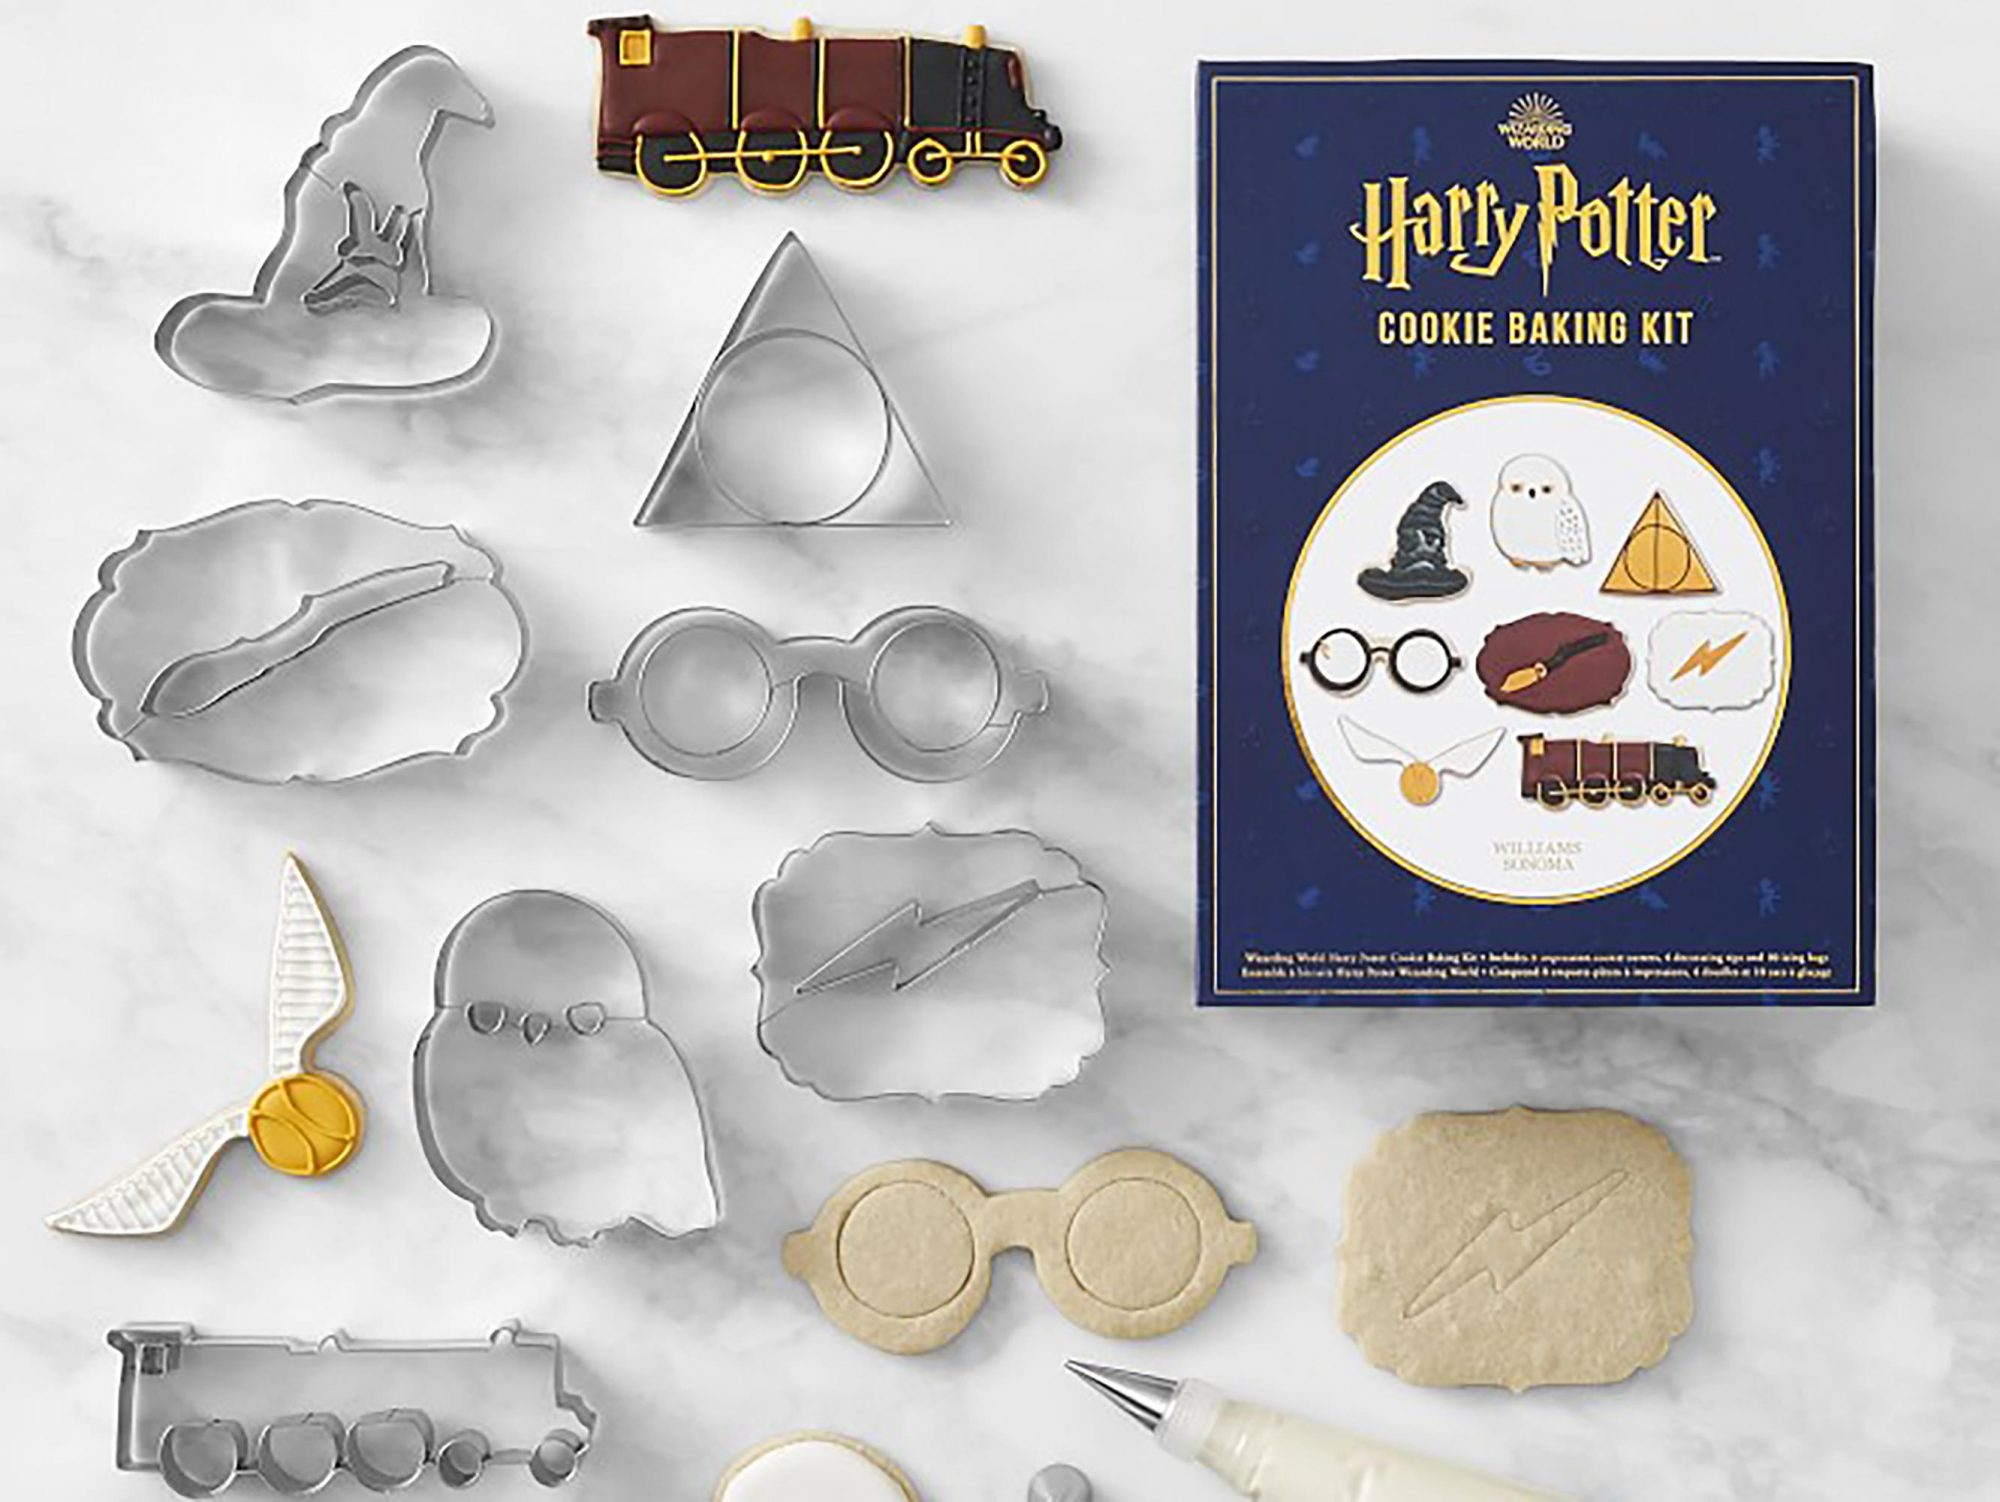 Williams Sonoma Adds New Harry Potter Items Just in Time for Holidays hp-cookie-baking-set